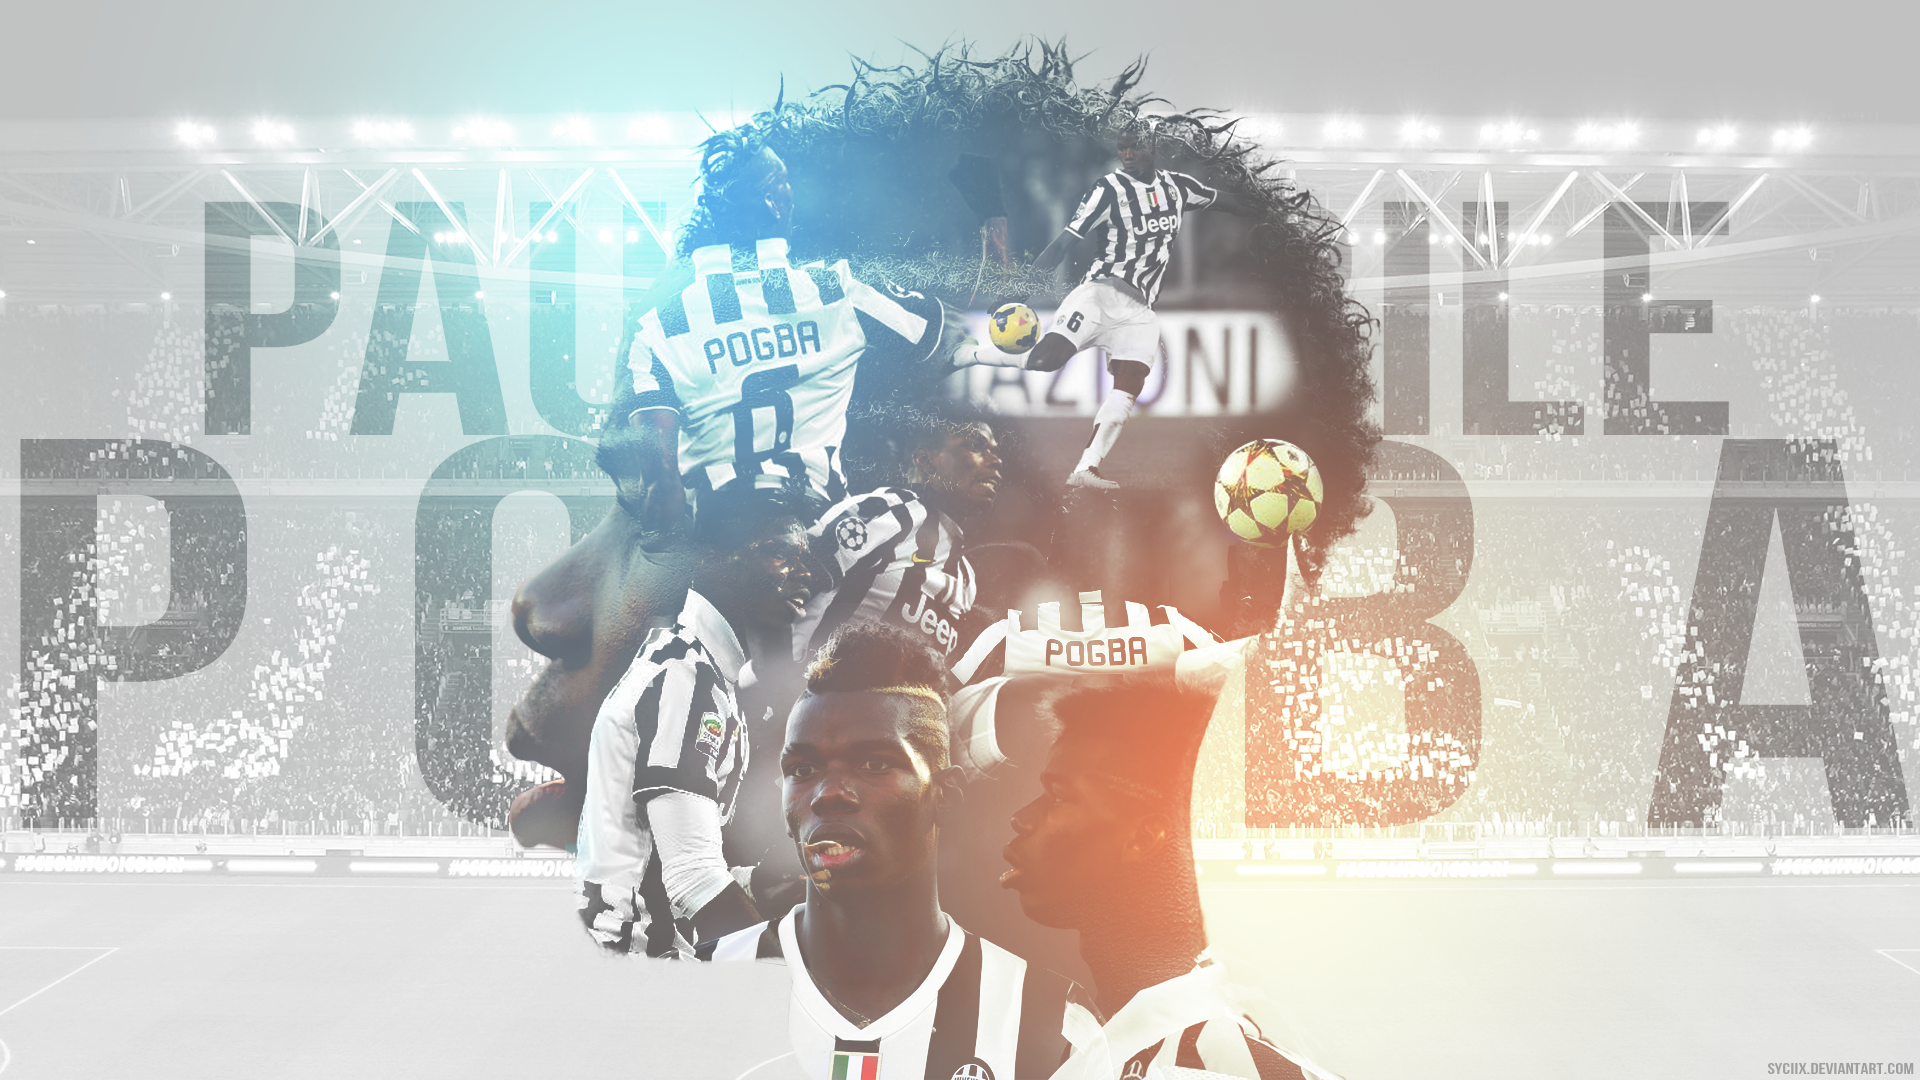 [Wallpaper] Paul Pogba By Syciix On DeviantArt